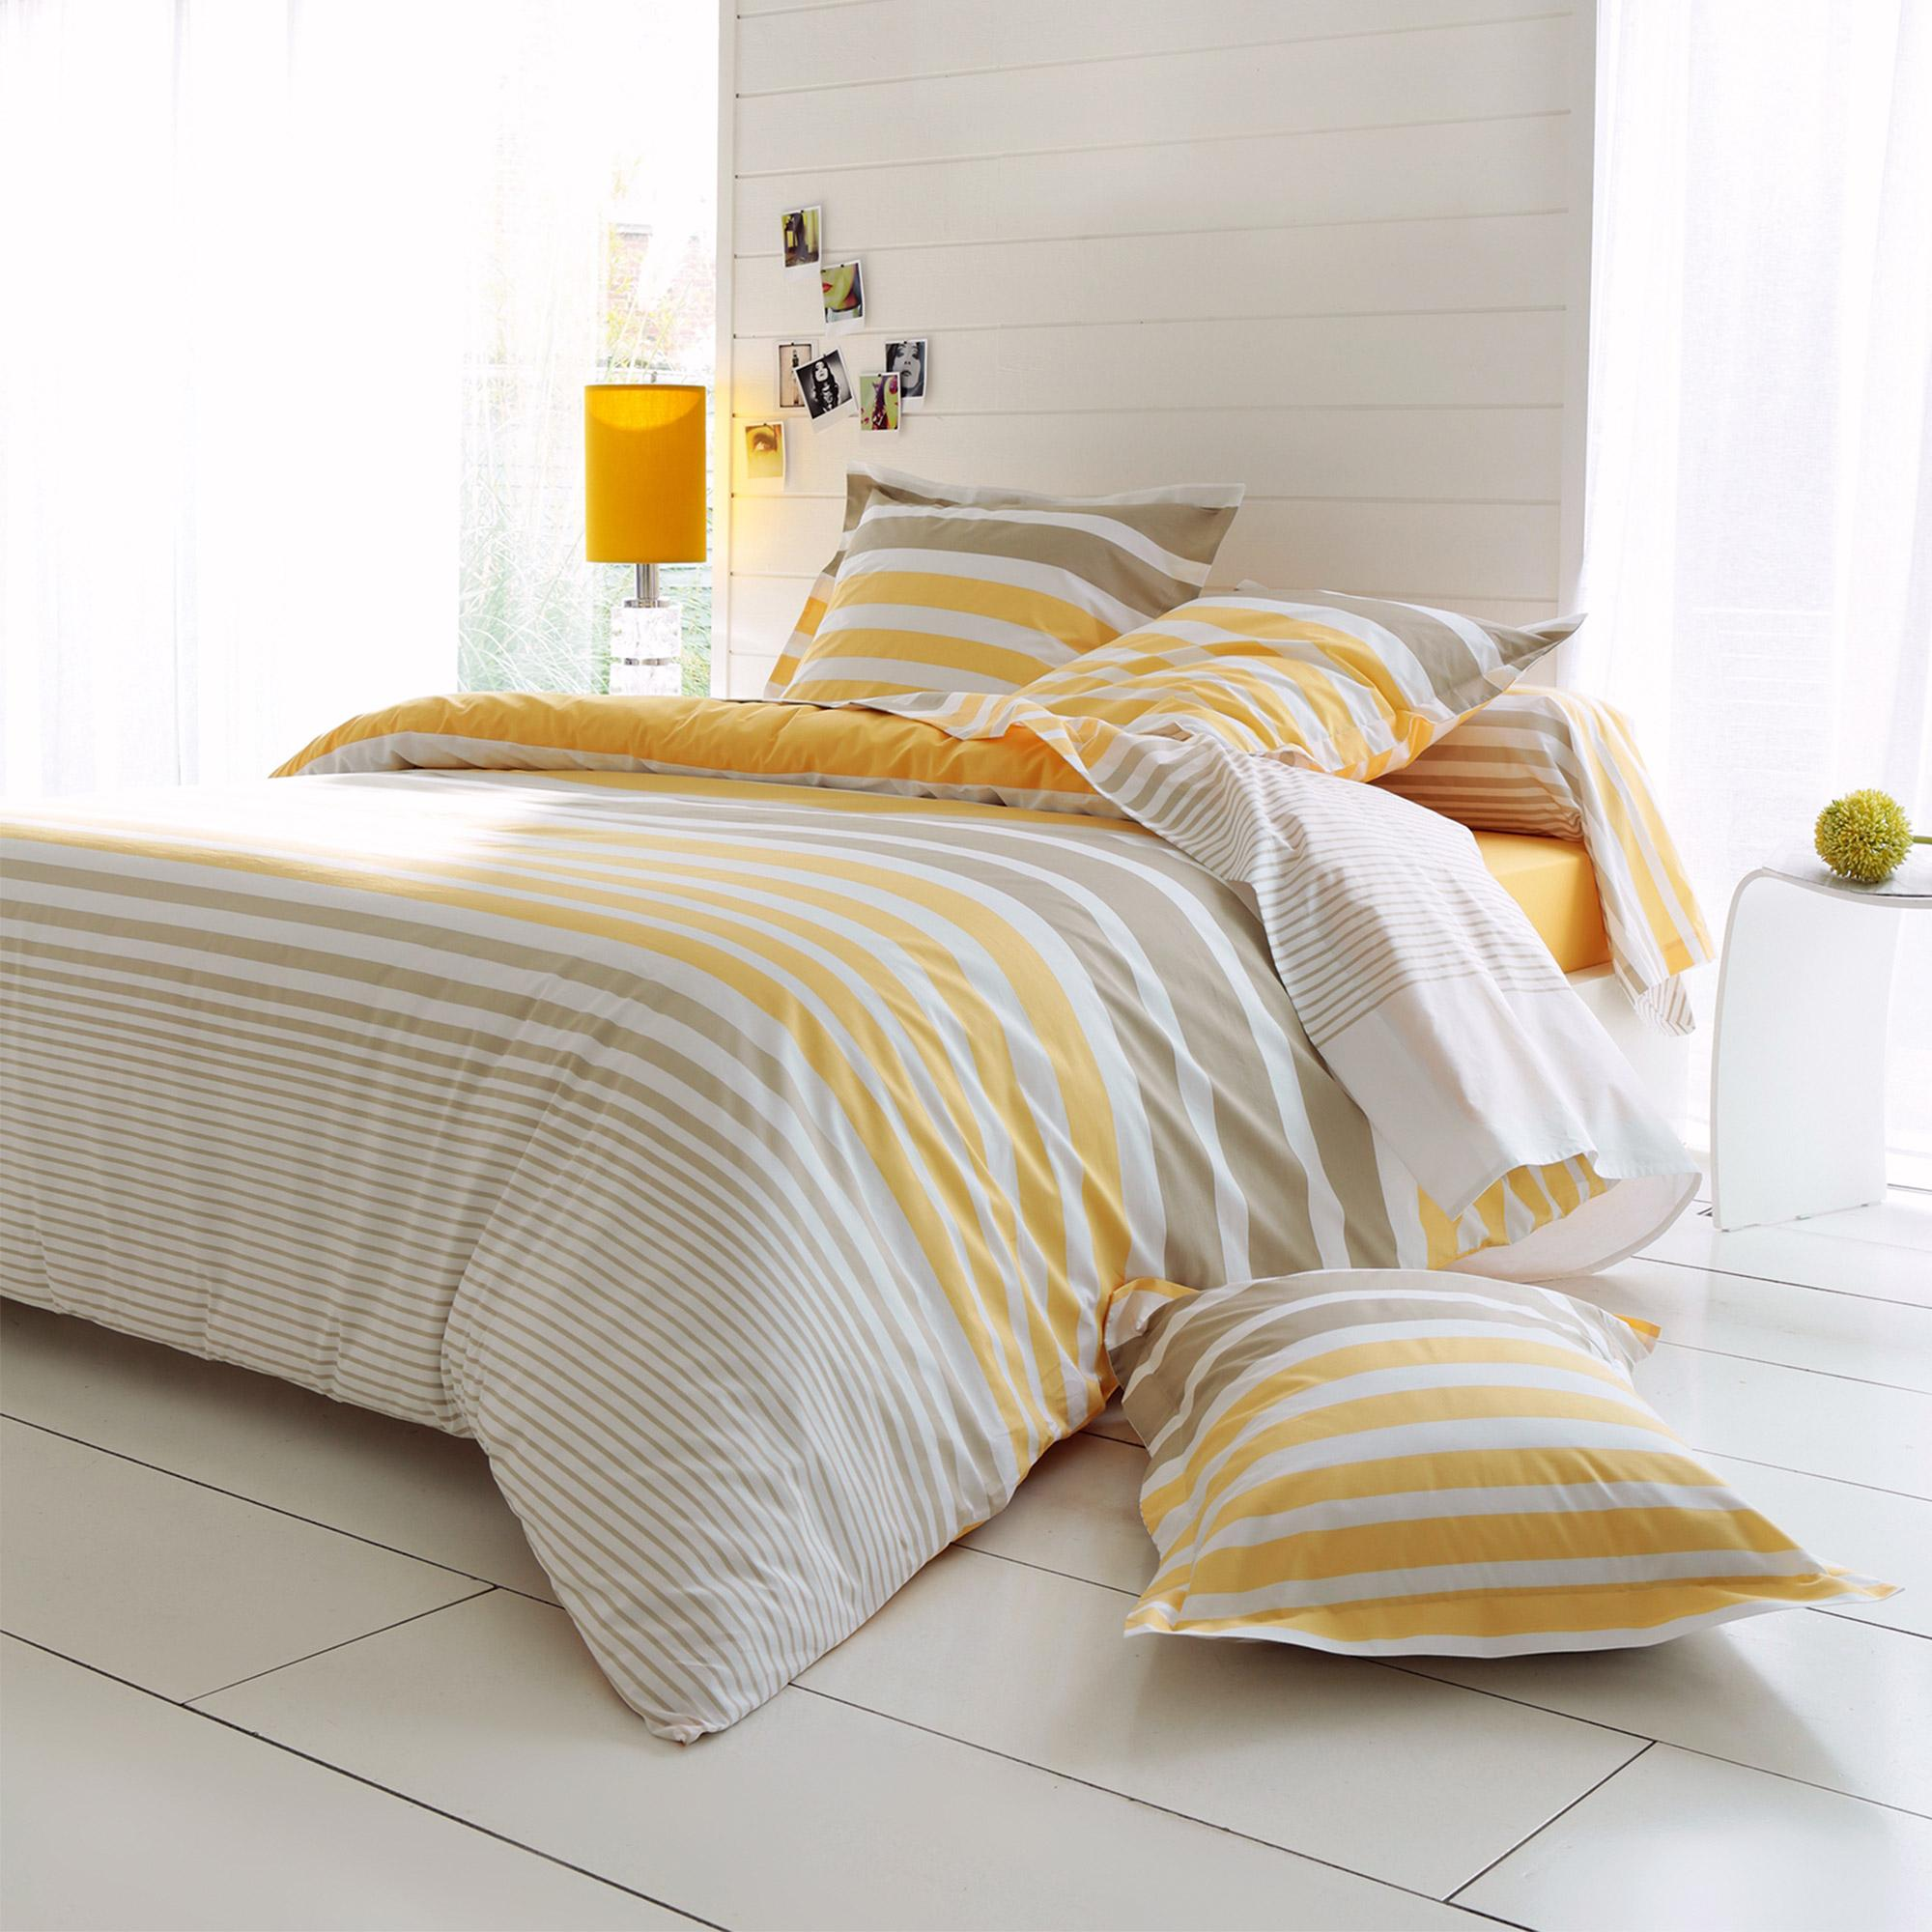 parure de lit 300x240 cm percale pur coton stripe narcisse jaune 3 pi ces linnea linge de. Black Bedroom Furniture Sets. Home Design Ideas